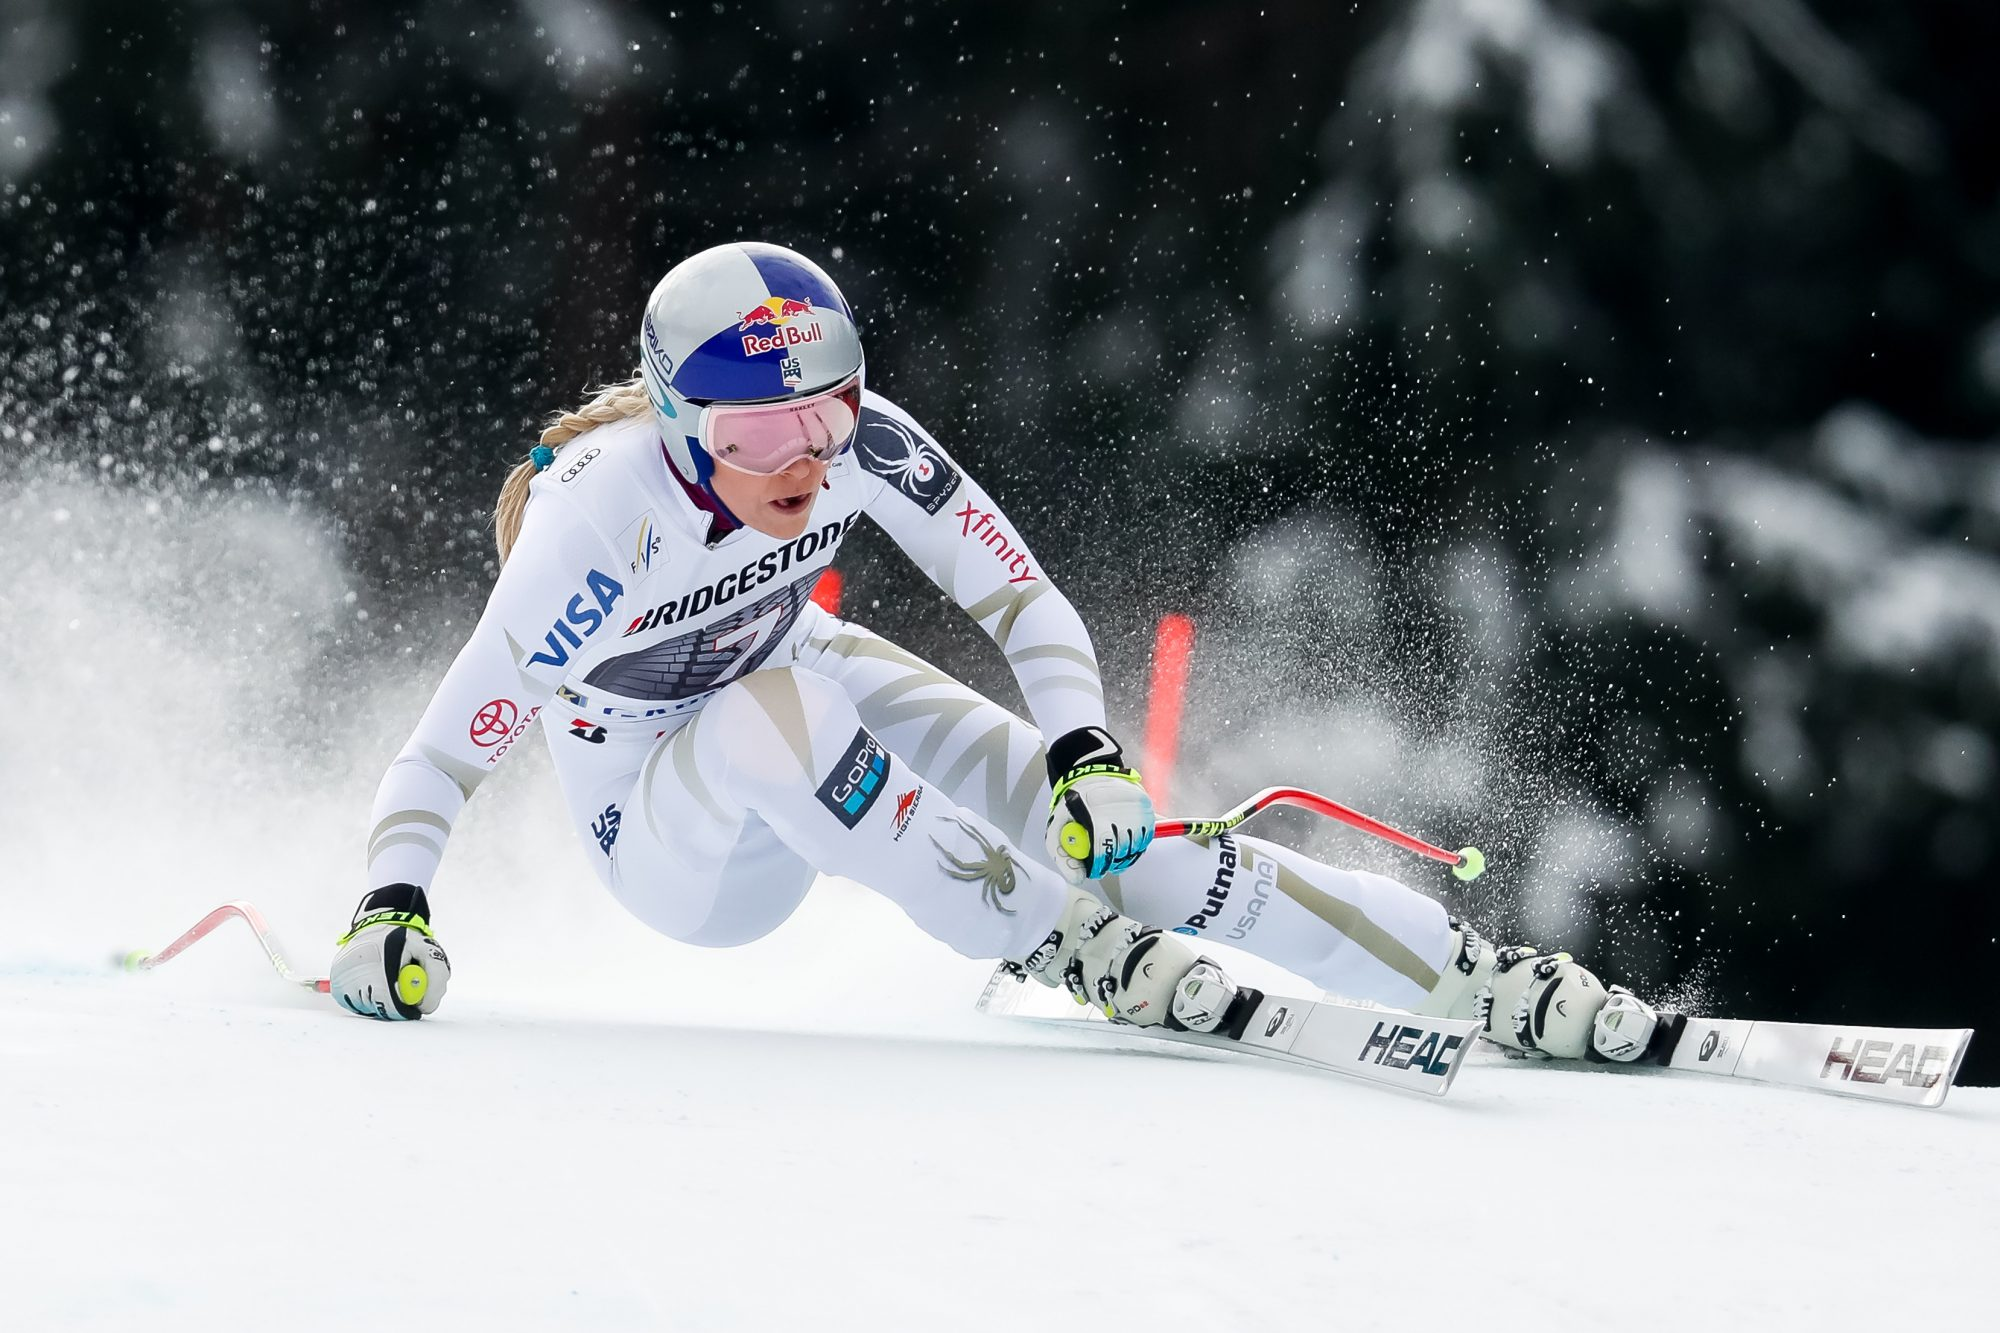 How many calories does downhill skiing burn?